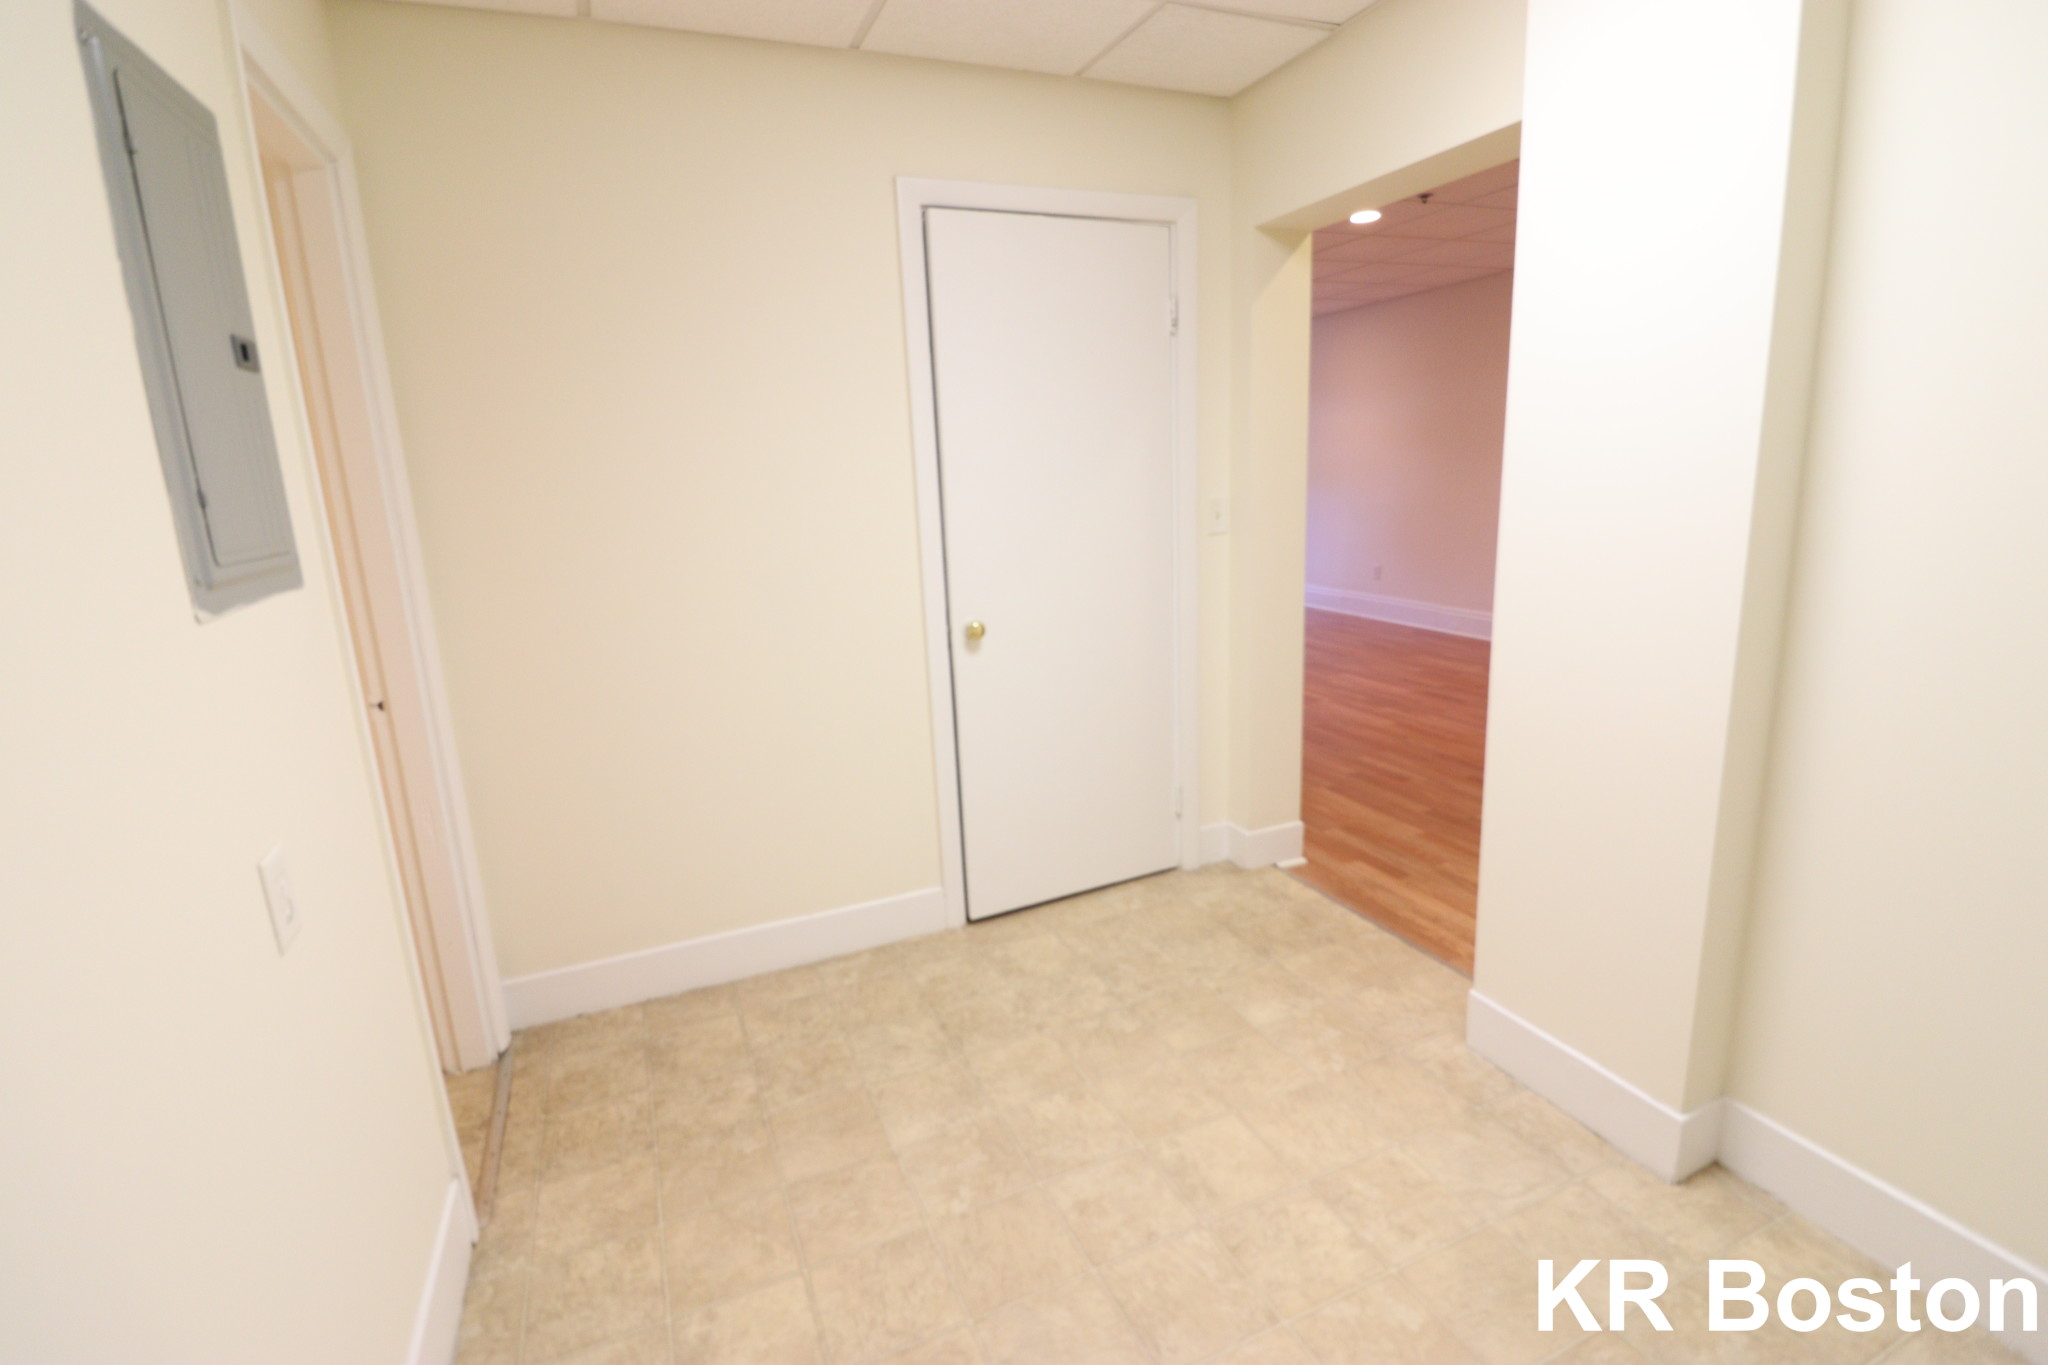 1 Bed, 1 Bath apartment in Boston, Back Bay for $2,200